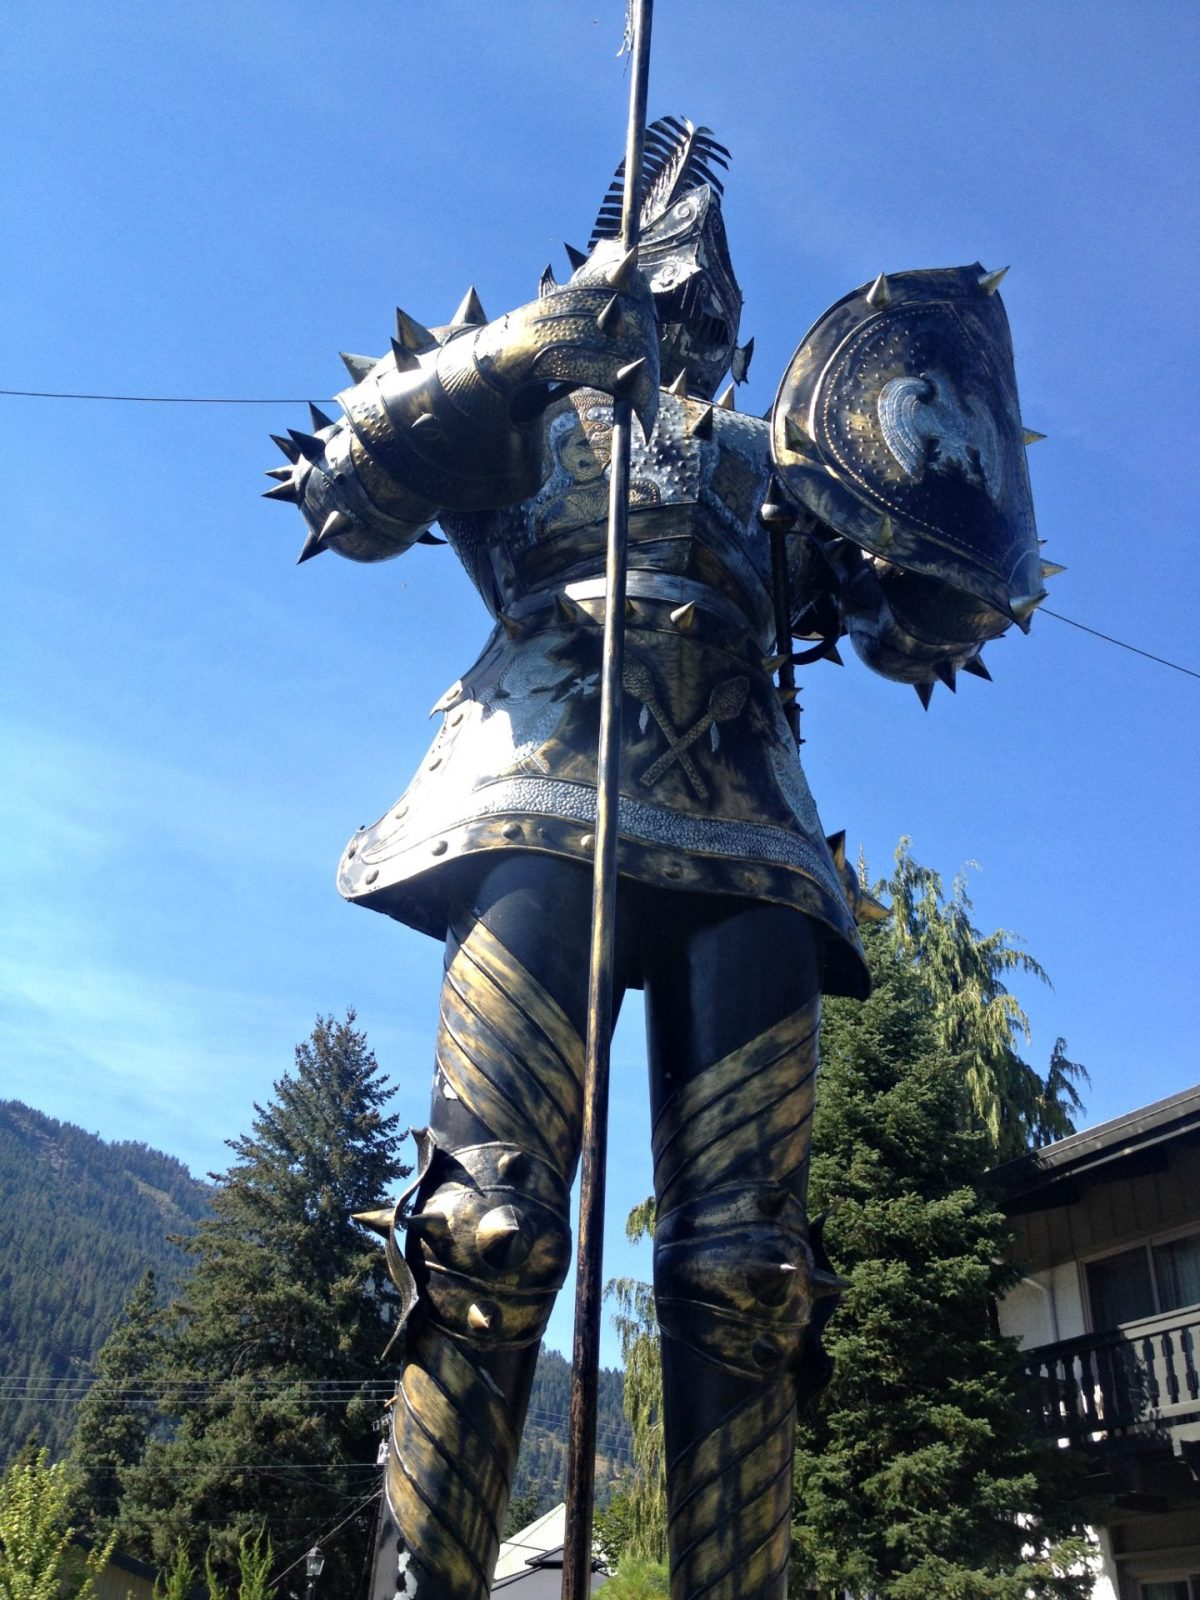 Giant Suit of Armor roadside attraction in Leavenworth Washington on Highway 2.